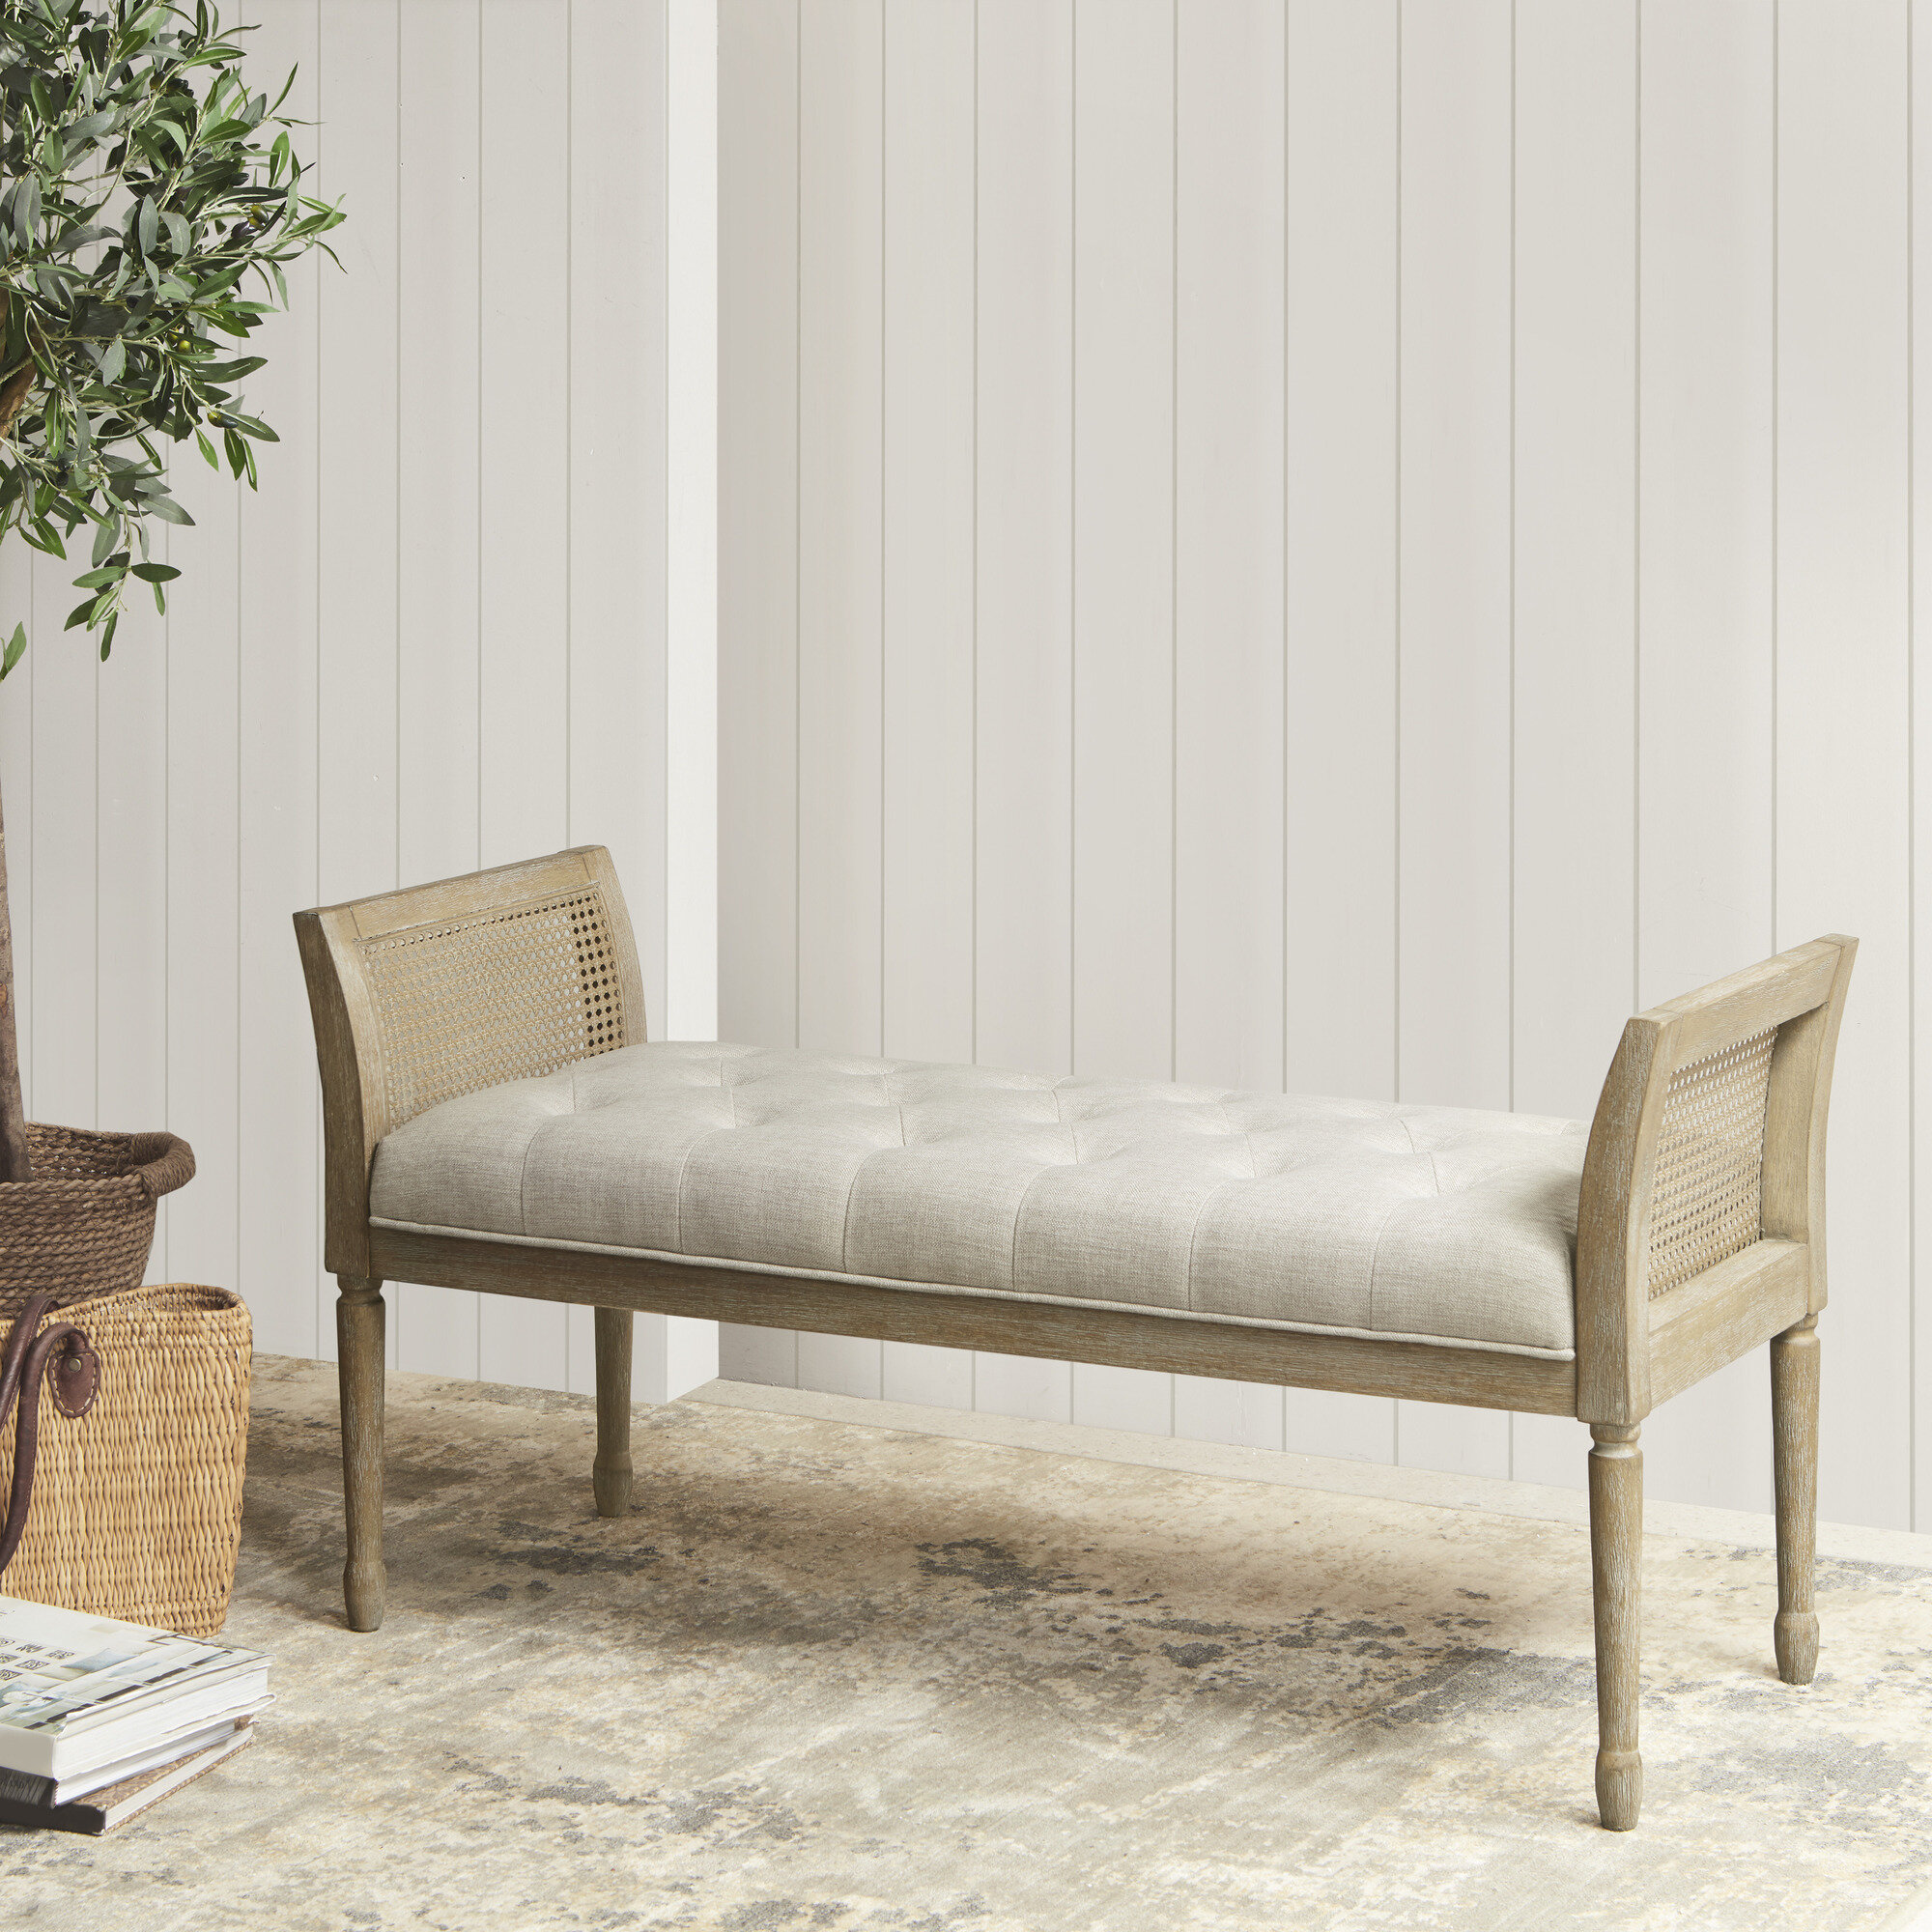 Magnificent Martha Stewart Isla Upholstered Bench Lamtechconsult Wood Chair Design Ideas Lamtechconsultcom